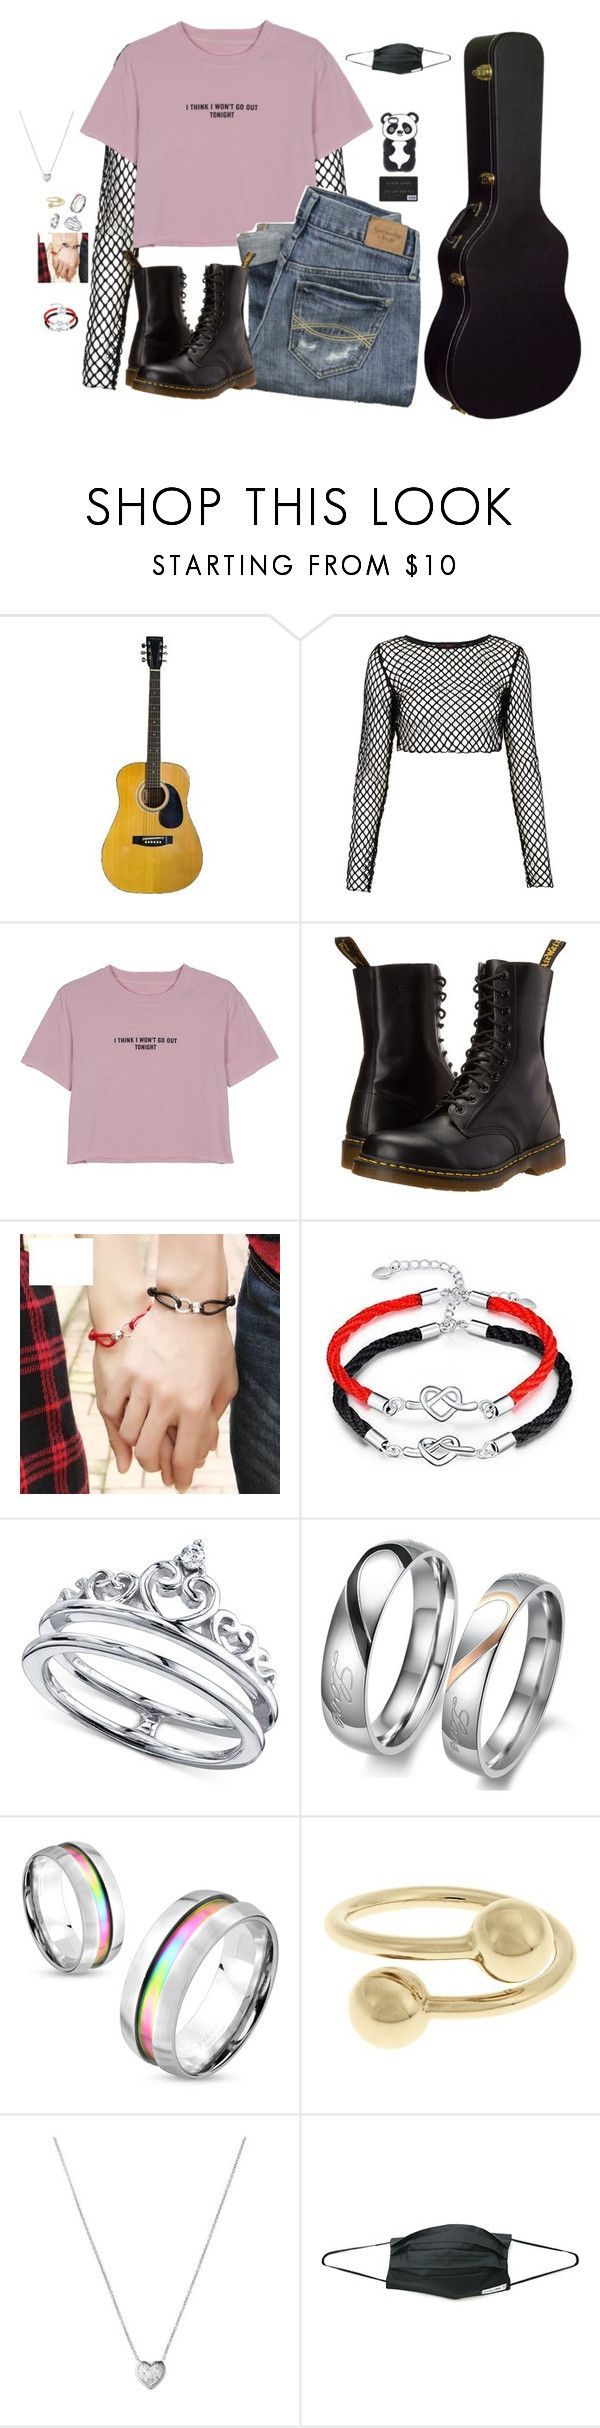 """Bringing food to Hyunki~Luna"" by luna-from-dna ❤ liked on Polyvore featuring Motel, WithChic, Abercrombie & Fitch, Dr. Martens, Unwritten, West Coast Jewelry, J.W. Anderson and Links of London"